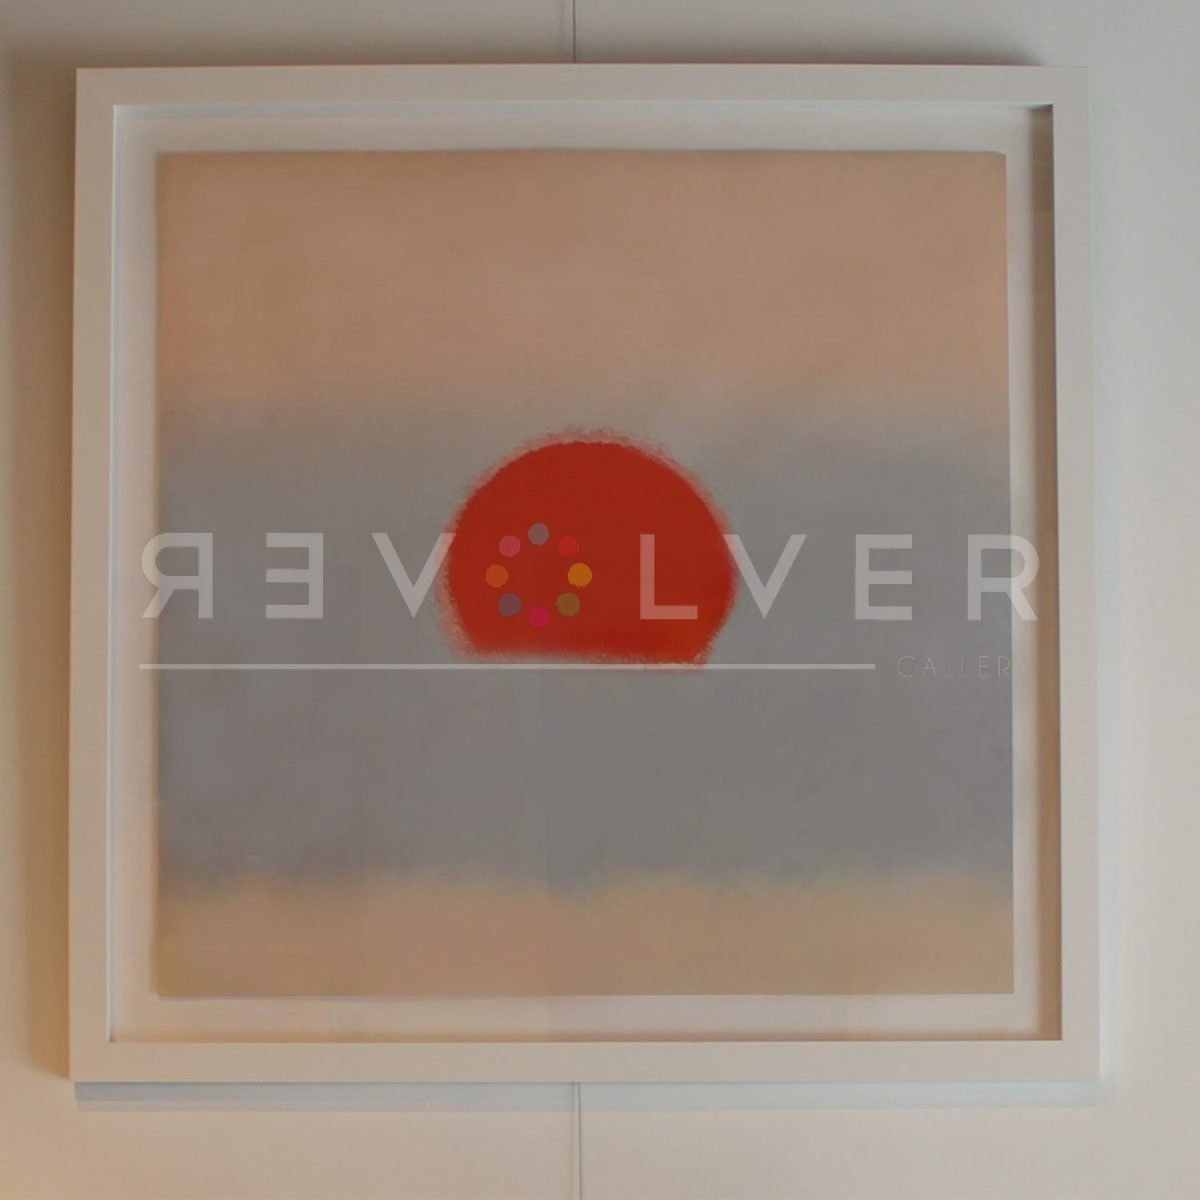 Andy Warhol Sunset (Blood Orange) in frame hanging on the gallery wall.